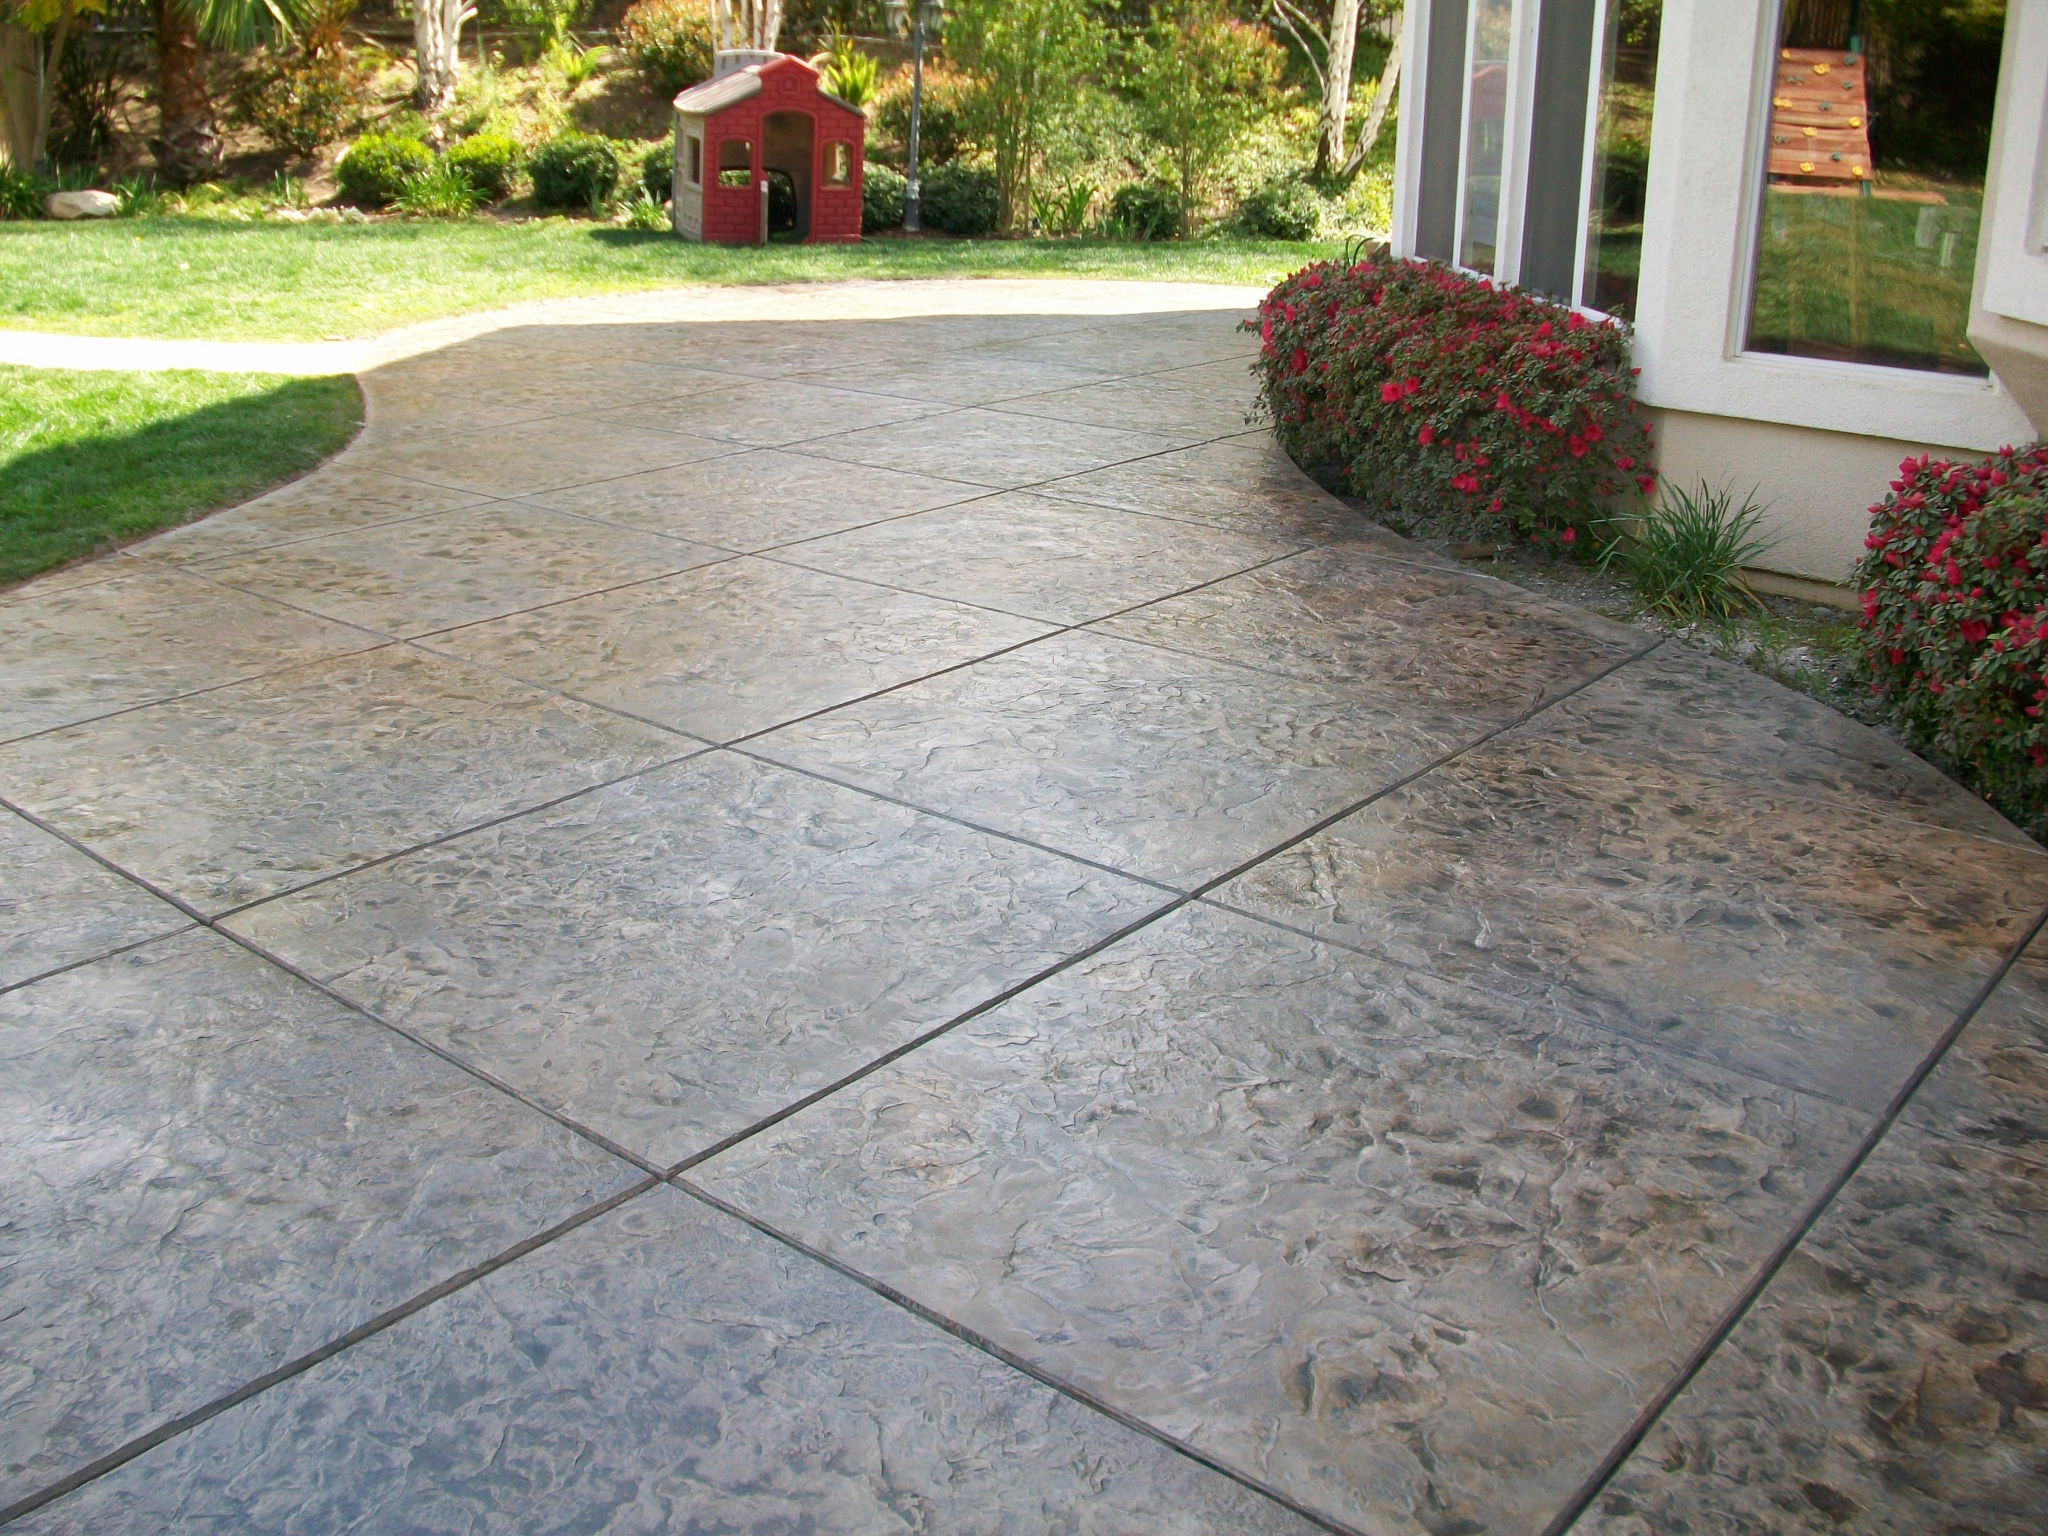 VIEW IN GALLERY Price For Stamped Concrete Patio Marvelous 1000 Images  About Stamped Concrete On Pinterest Stamped